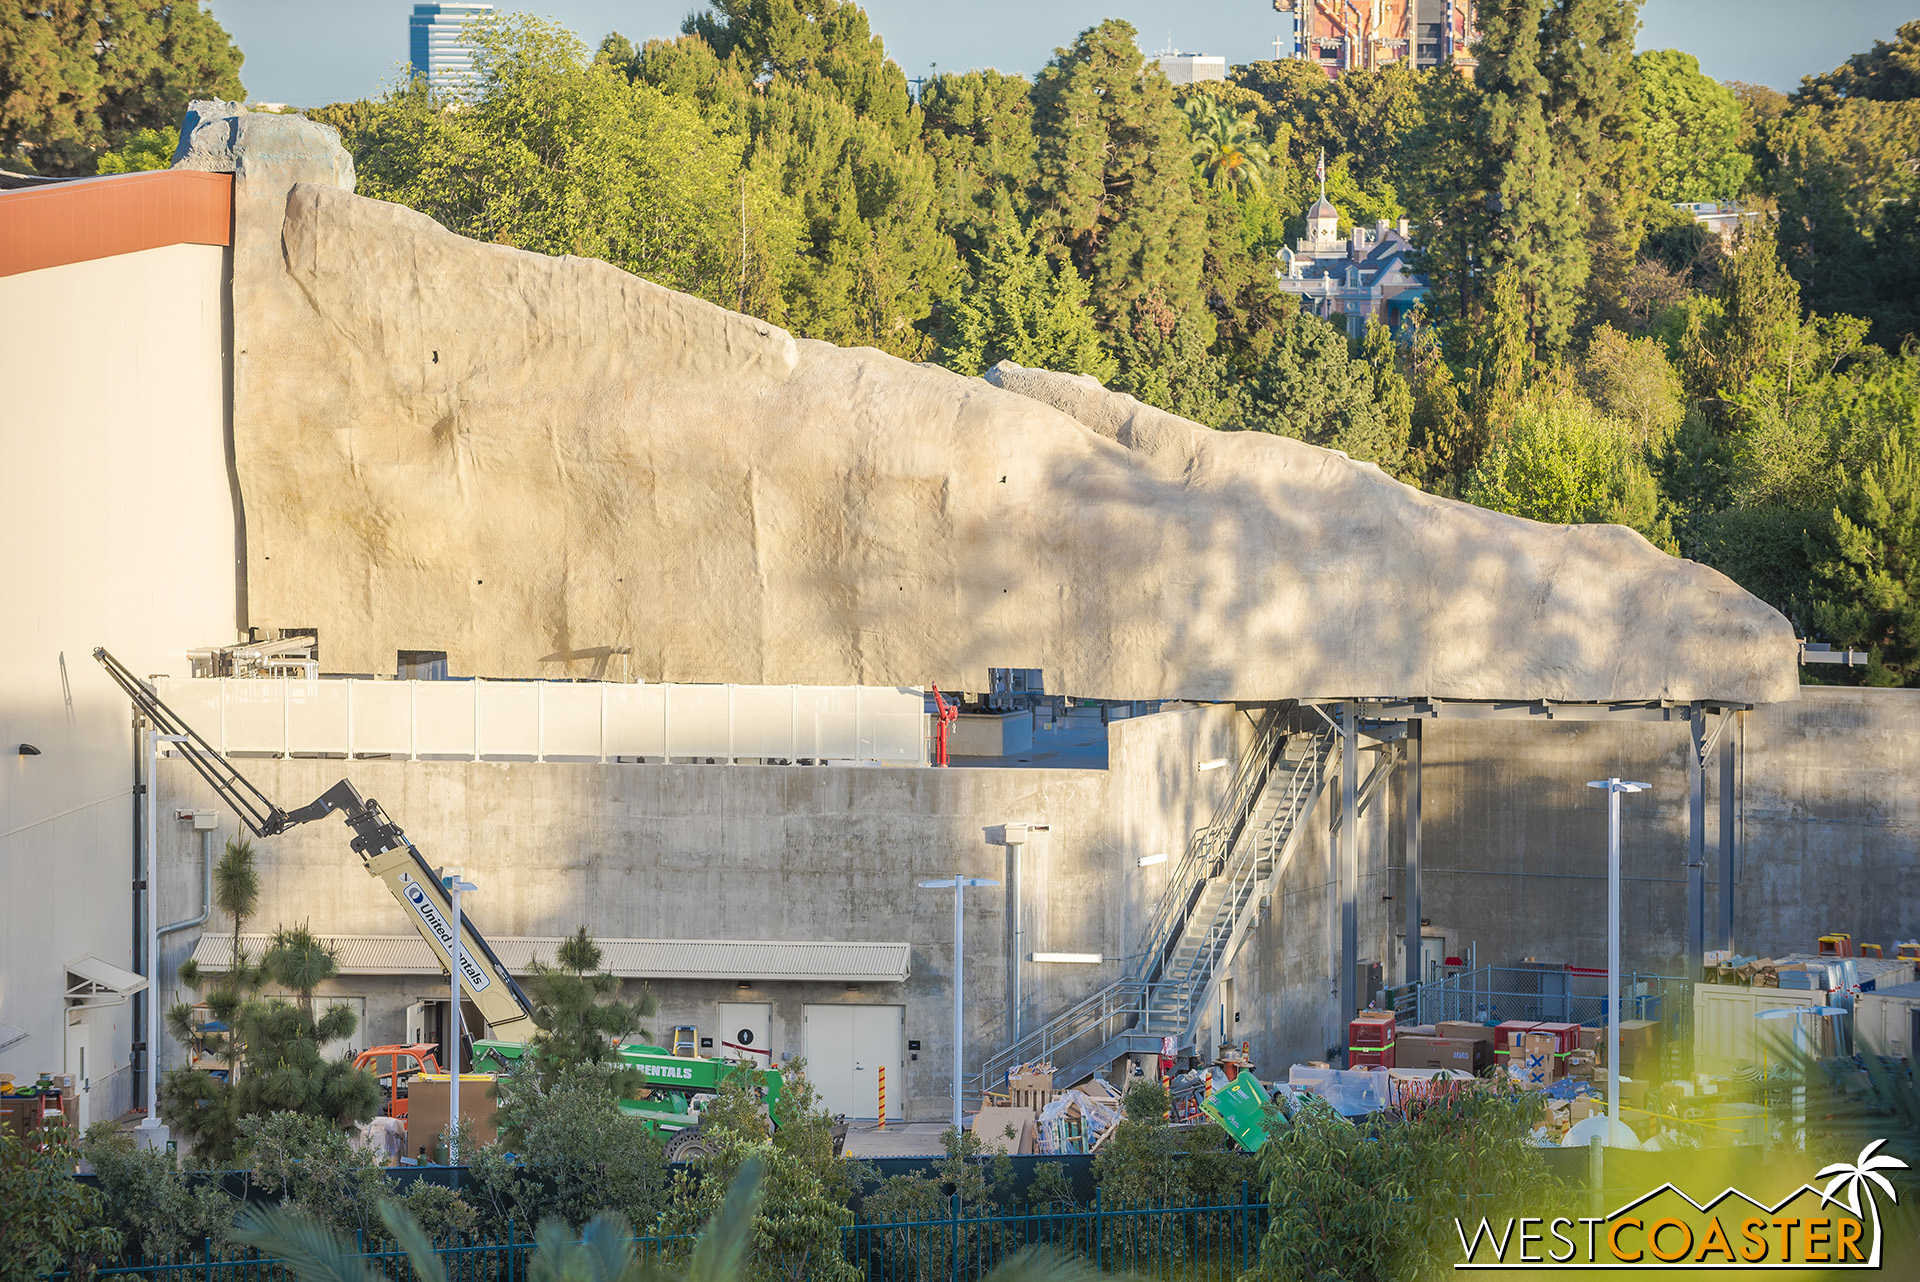 I hope it looks at least presentable from all angles when Galaxy's Edge opens!